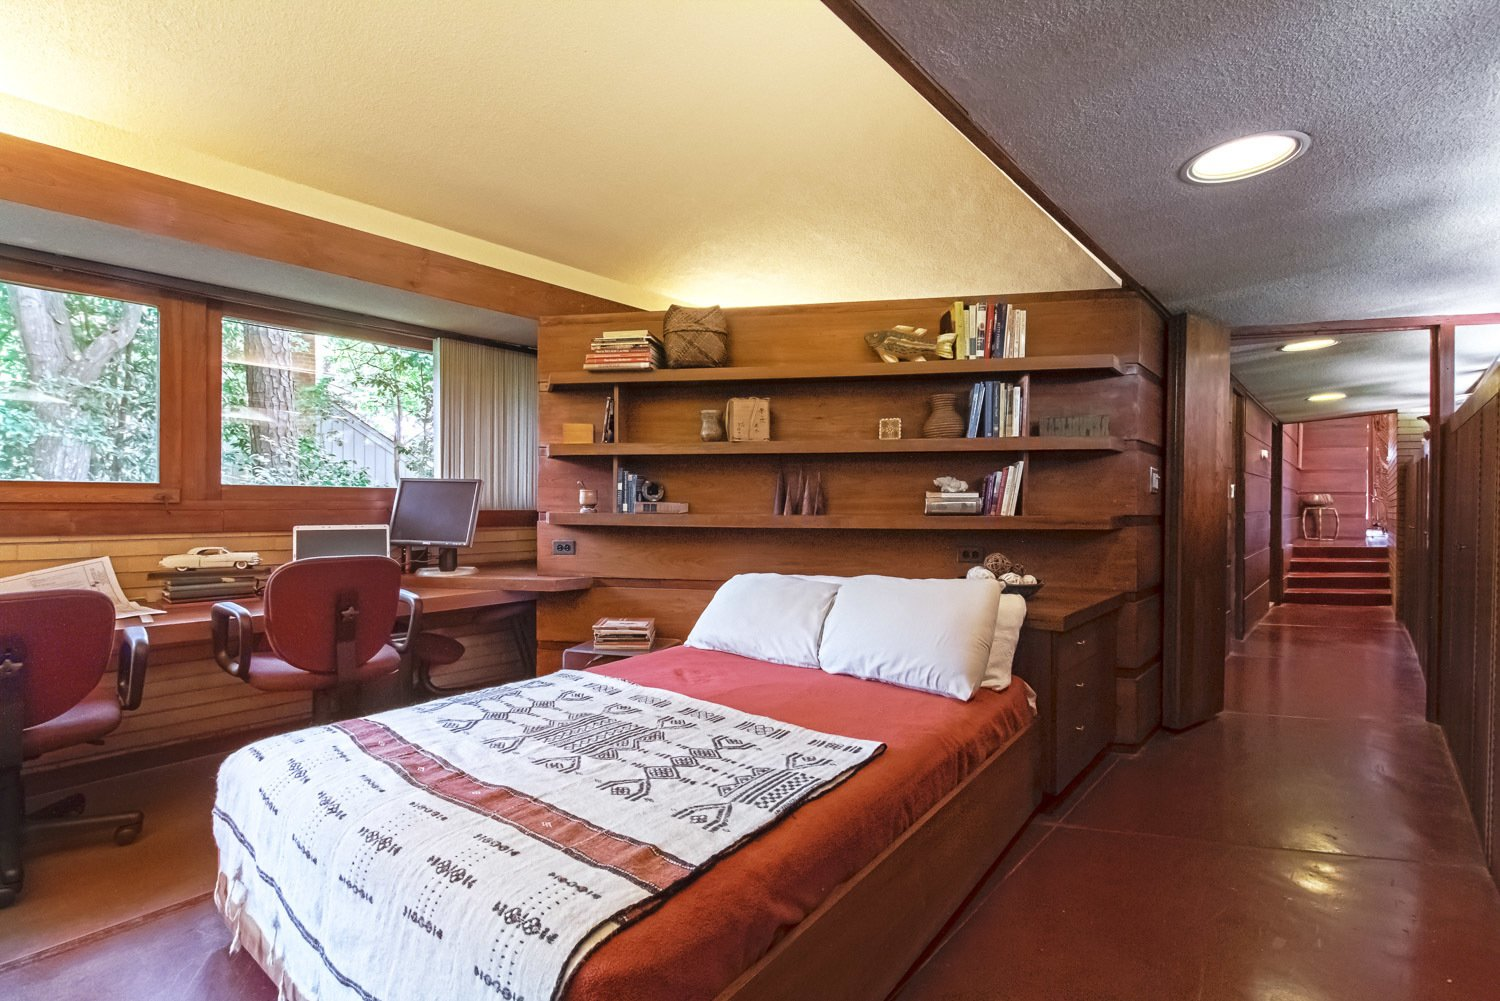 Photo 5 of 7 in You Can Own One of Frank Lloyd Wright's Final Homes for $2.75 Million